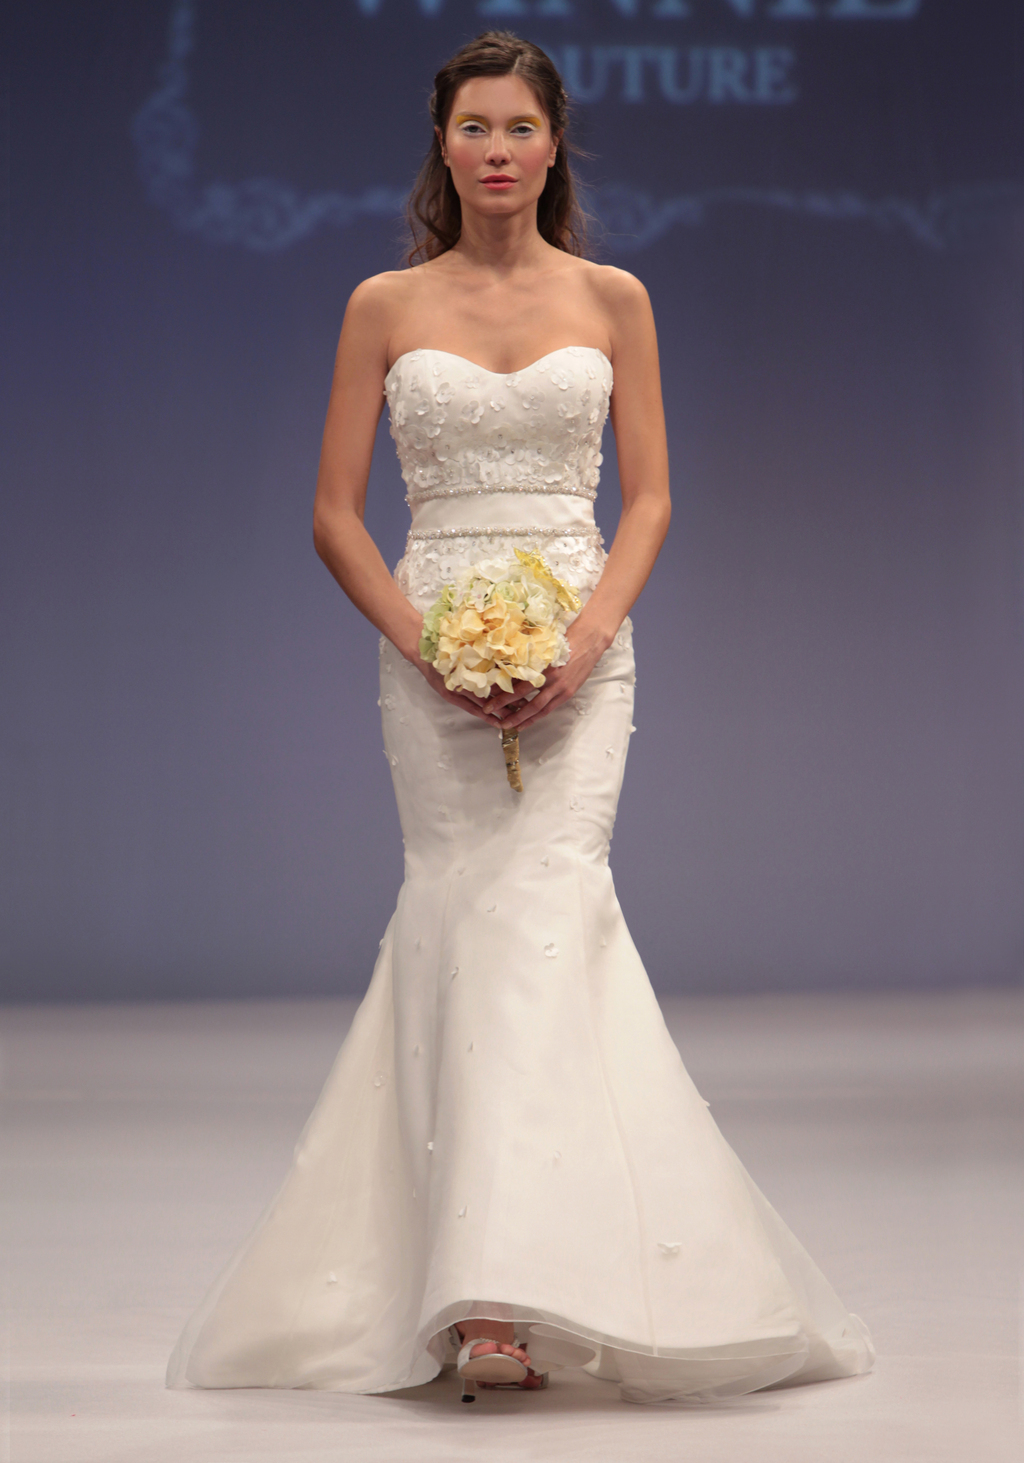 Winnie-couture-bridal-gown-spring-2013-wedding-dress-lanelle.full